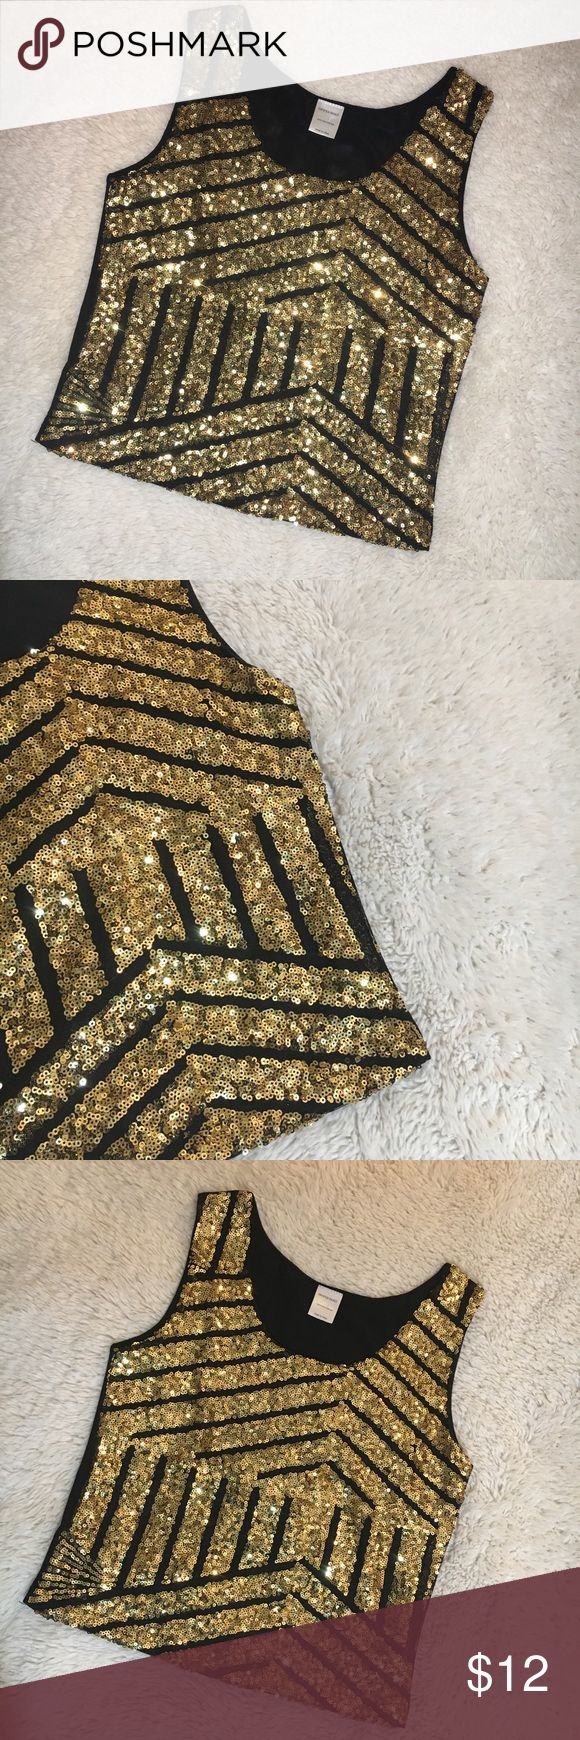 Gold and black sparkly crop top tank! NWOT Gold and black sparkly crop top tank! NWOT Tops Crop Tops